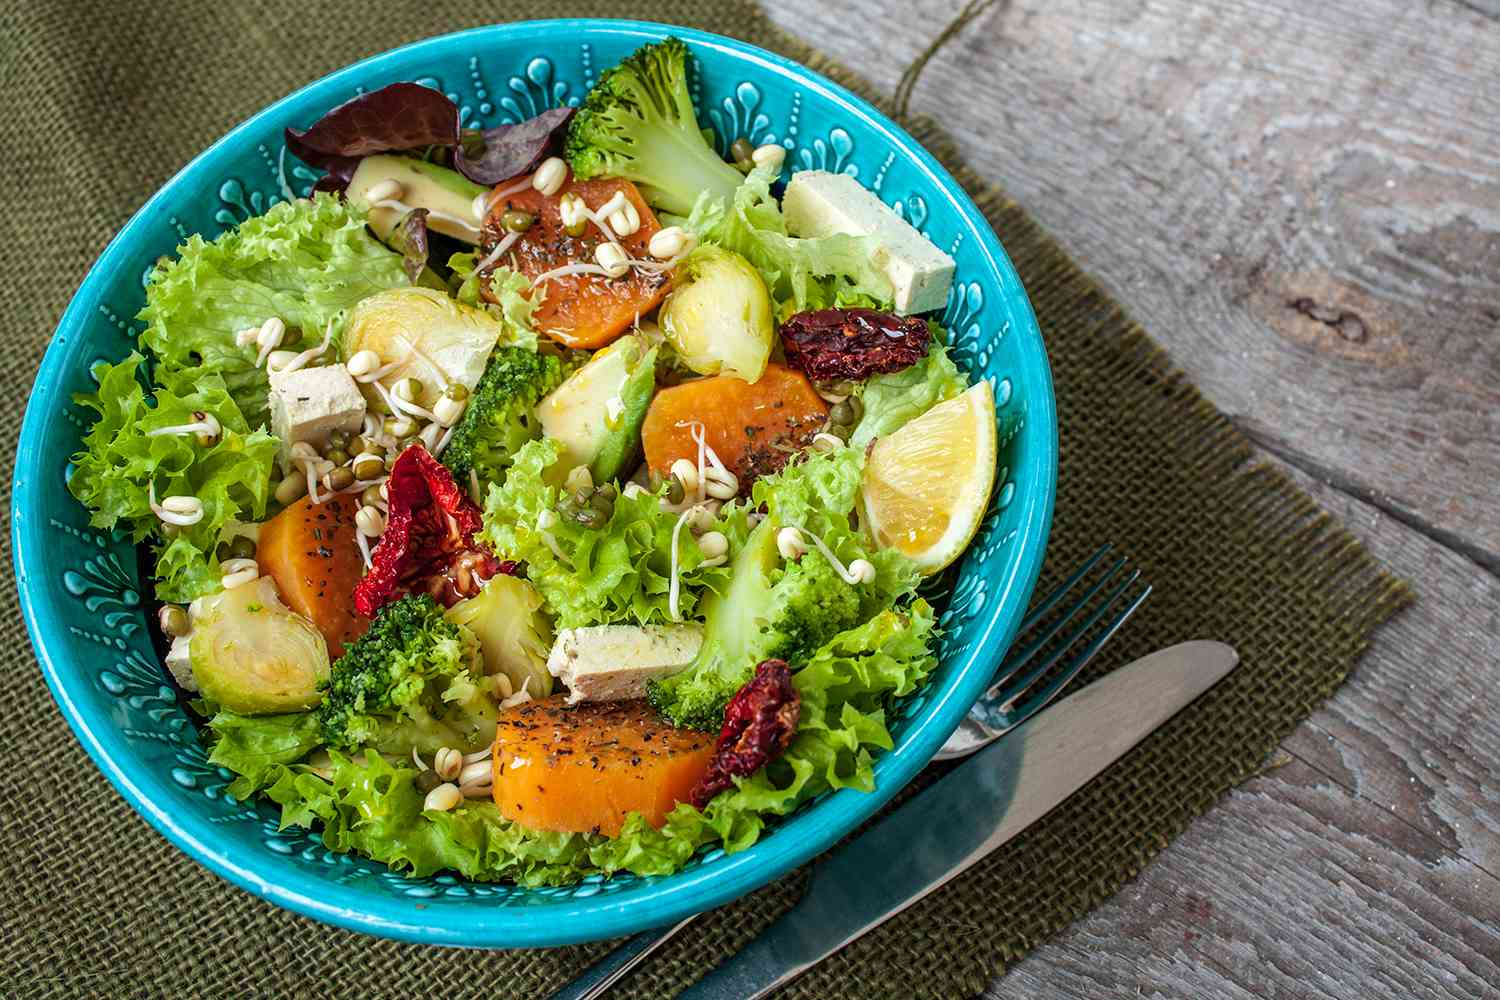 Salad with sweet potatoes, dried tomatoes, avocado, broccoli, brussels sprouts, tofu, mung bean sprouts.